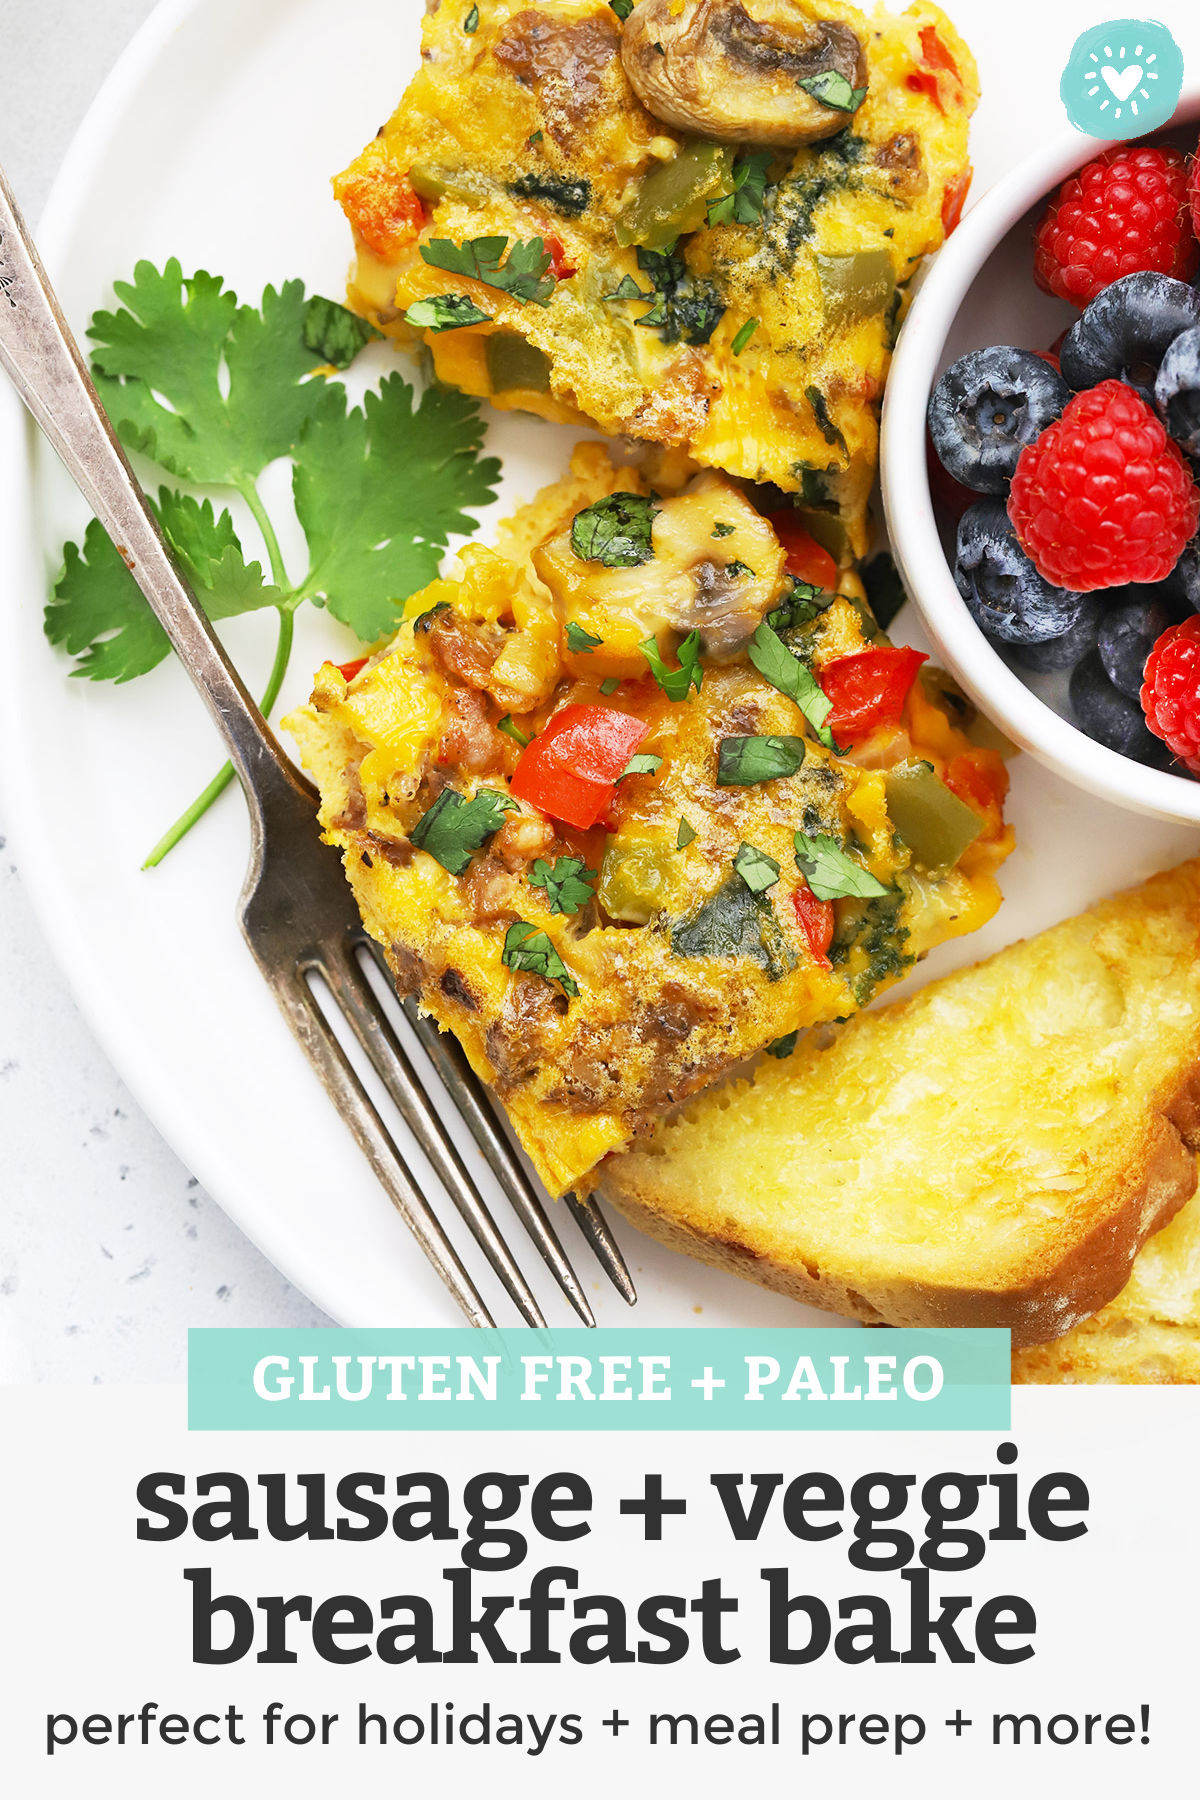 Sausage and Veggie Breakfast Bake - This cozy sausage veggie breakfast casserole is perfect for holidays, get-togethers, or meal prep. It reheats like a dream and tastes fantastic! // Meal prep breakfast // Paleo egg casserole // whole30 breakfast casserole #breakfast #eggcasserole #eggbake #paleo #whole30 #breakfastbake